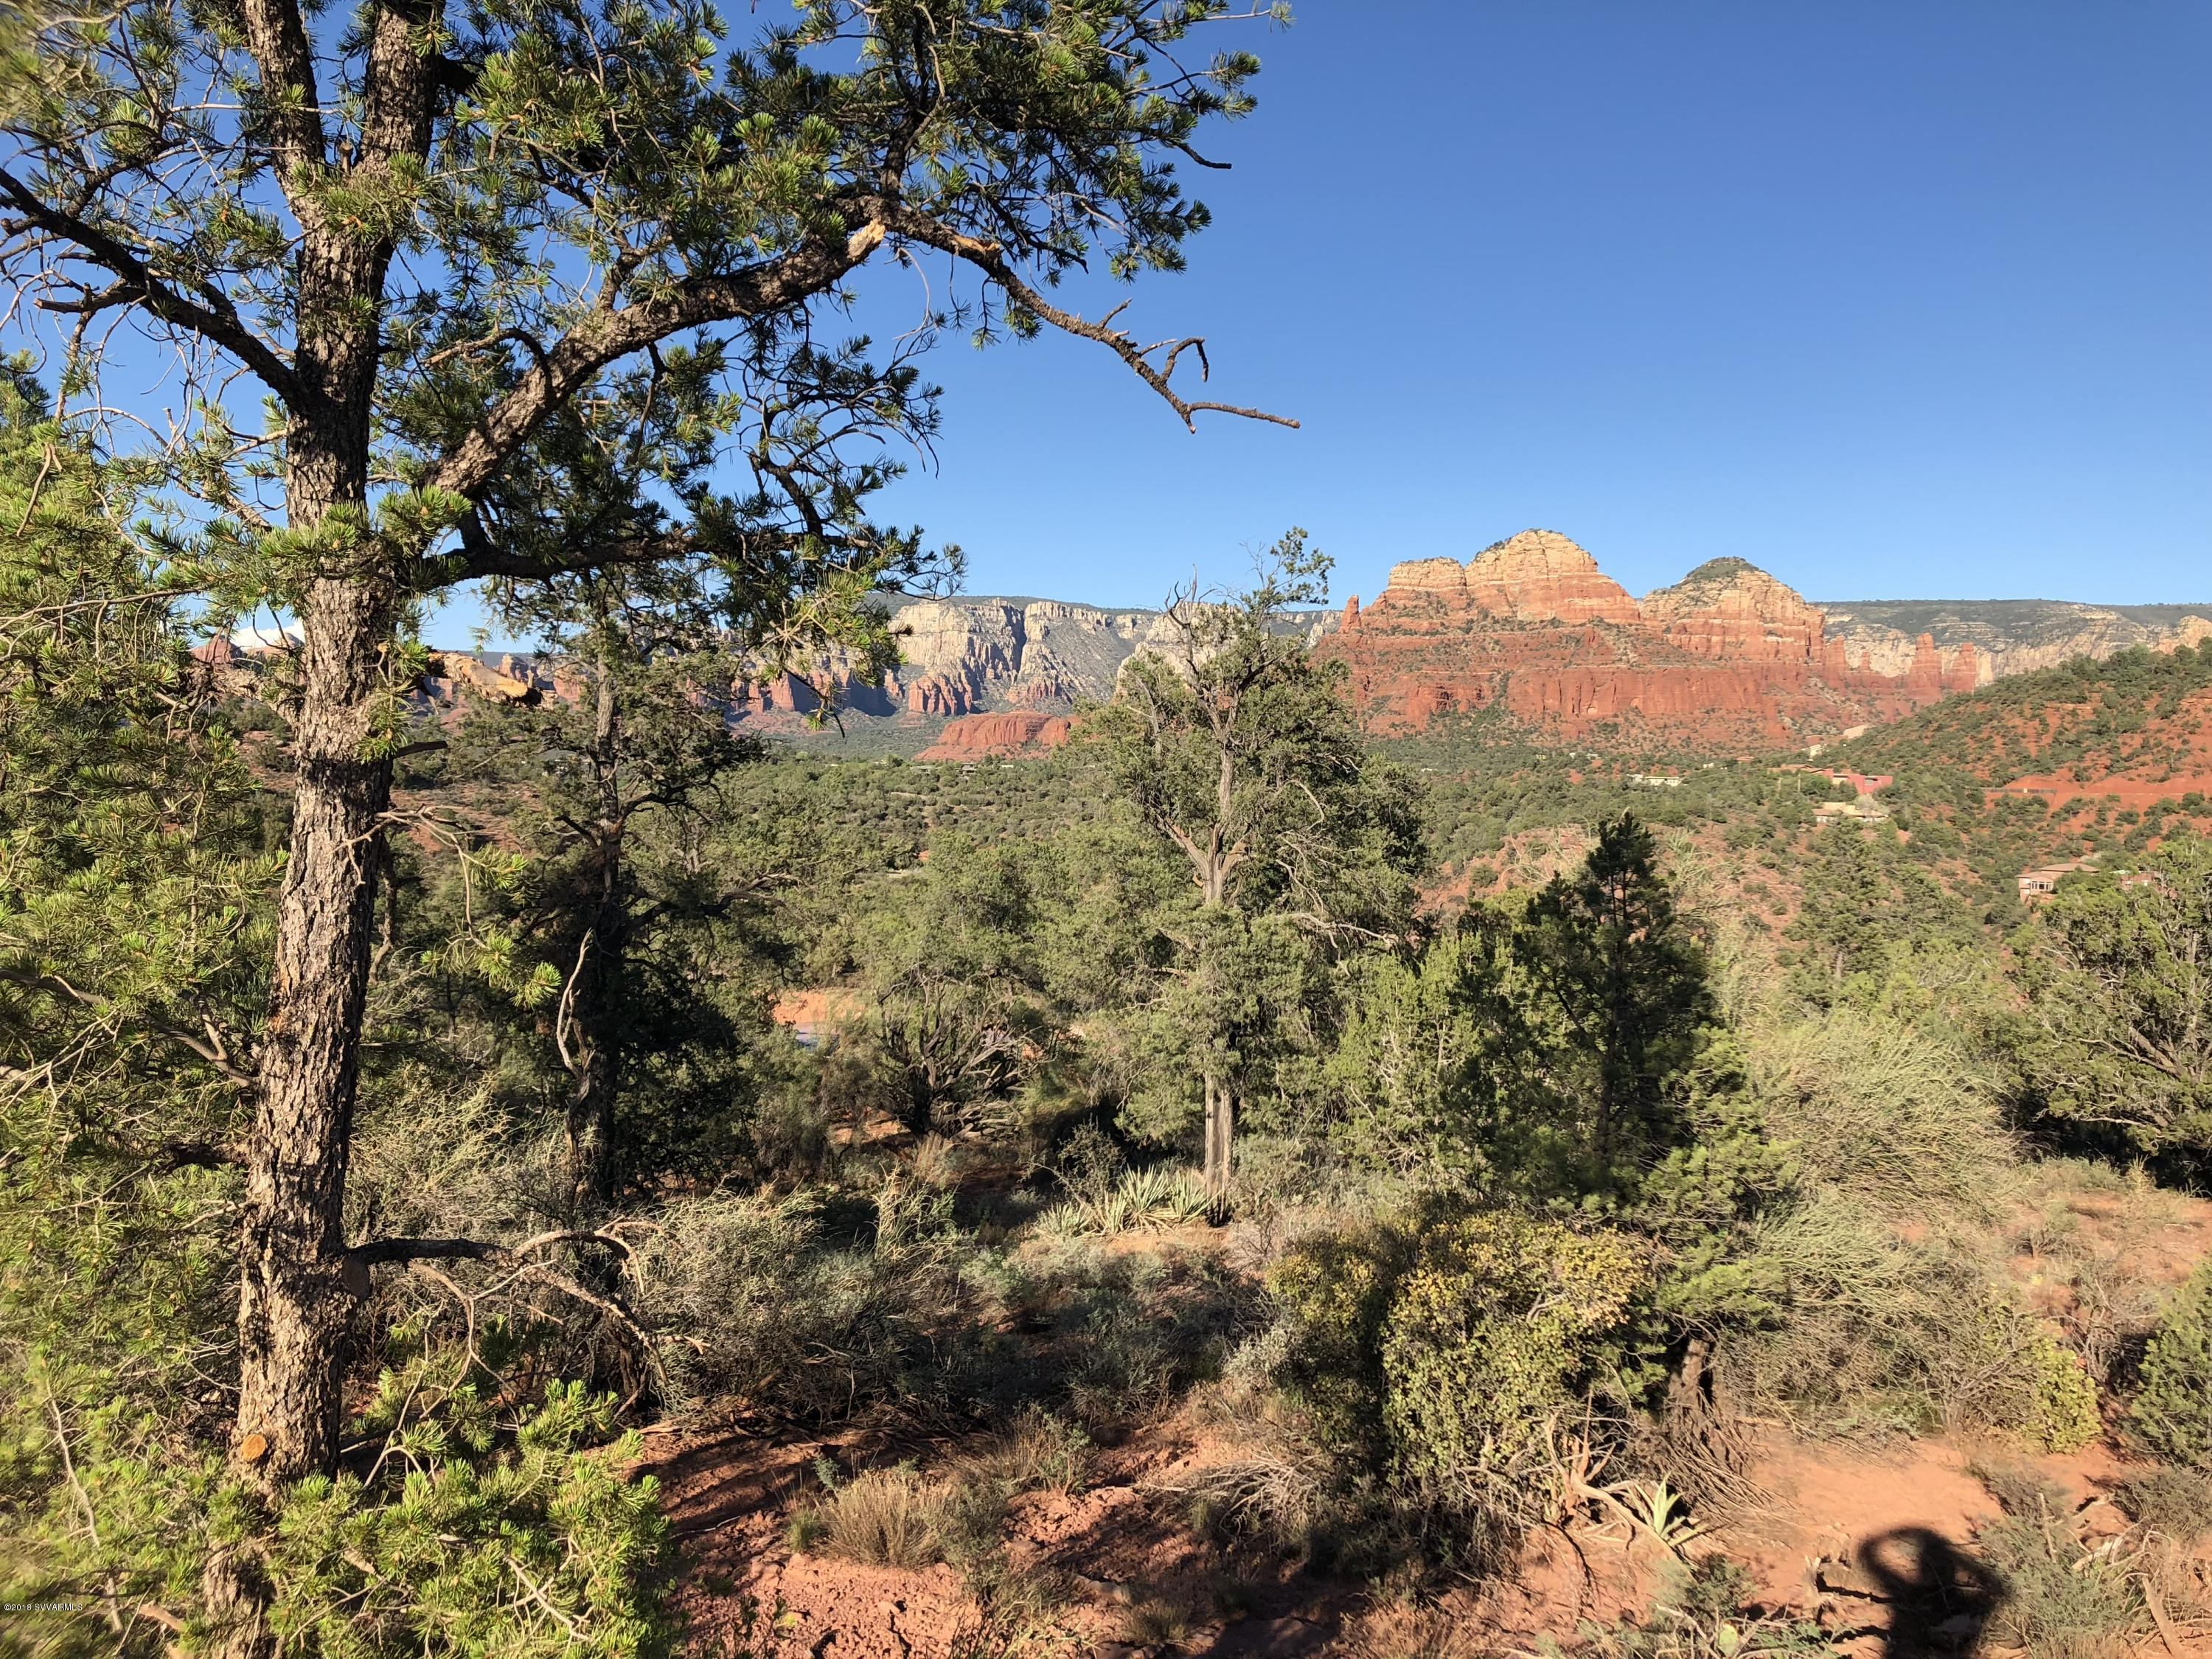 32 Pinnacle Sedona, AZ 86336